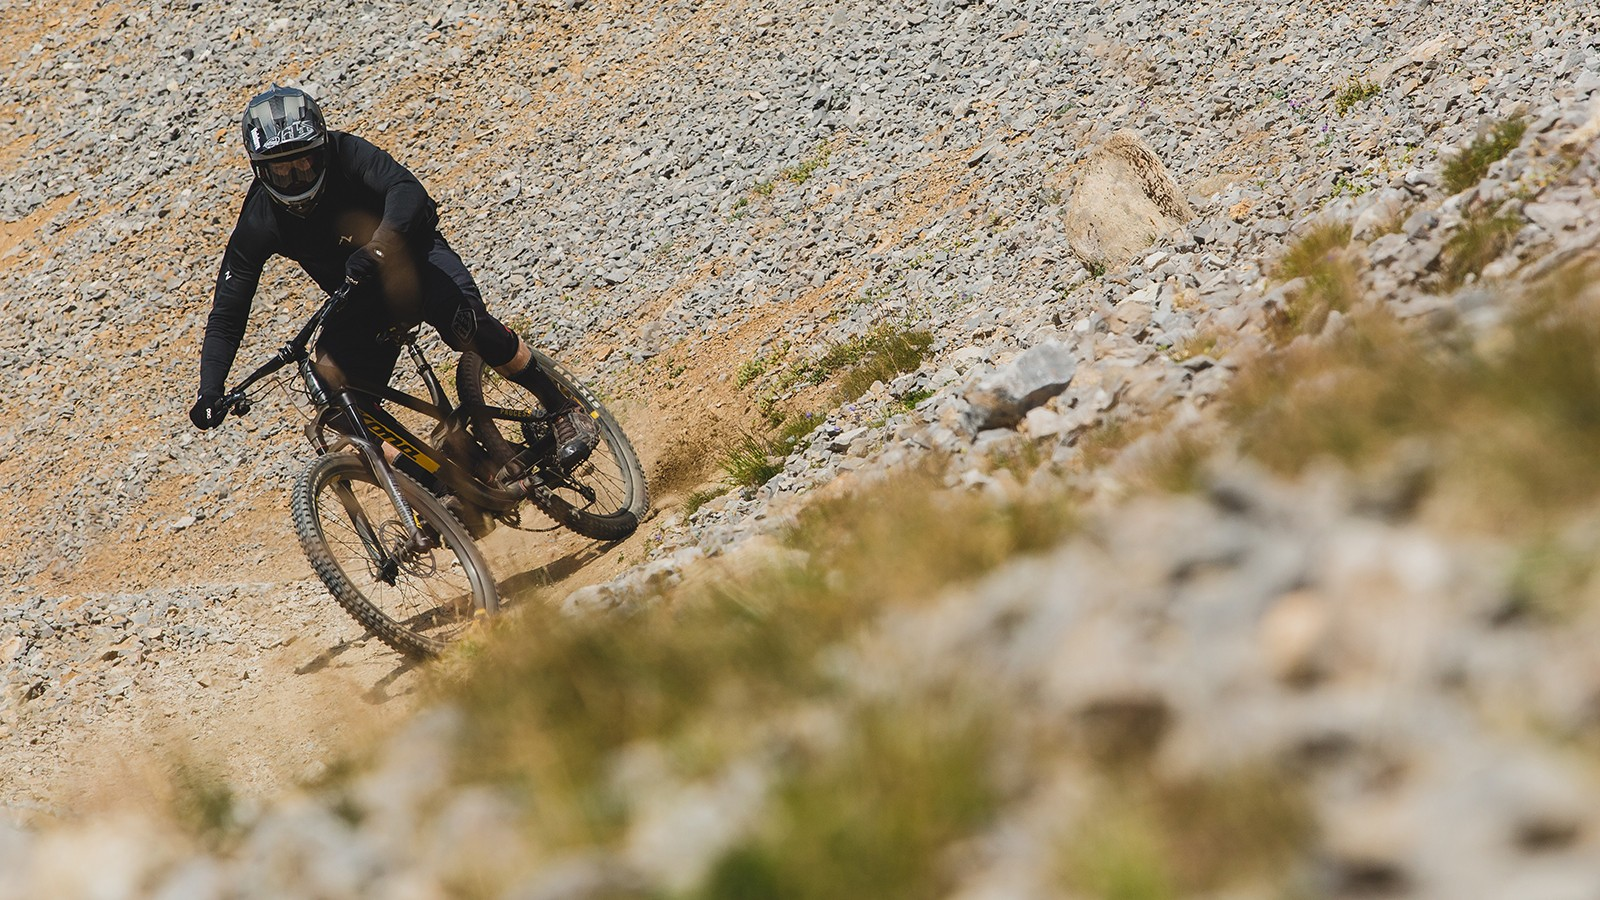 Of course the real test is out on the trail. At the Kona launch in Tignes and Val D'isere, we did our best to put the new Process through its paces. Stay tuned for a full review, coming soon